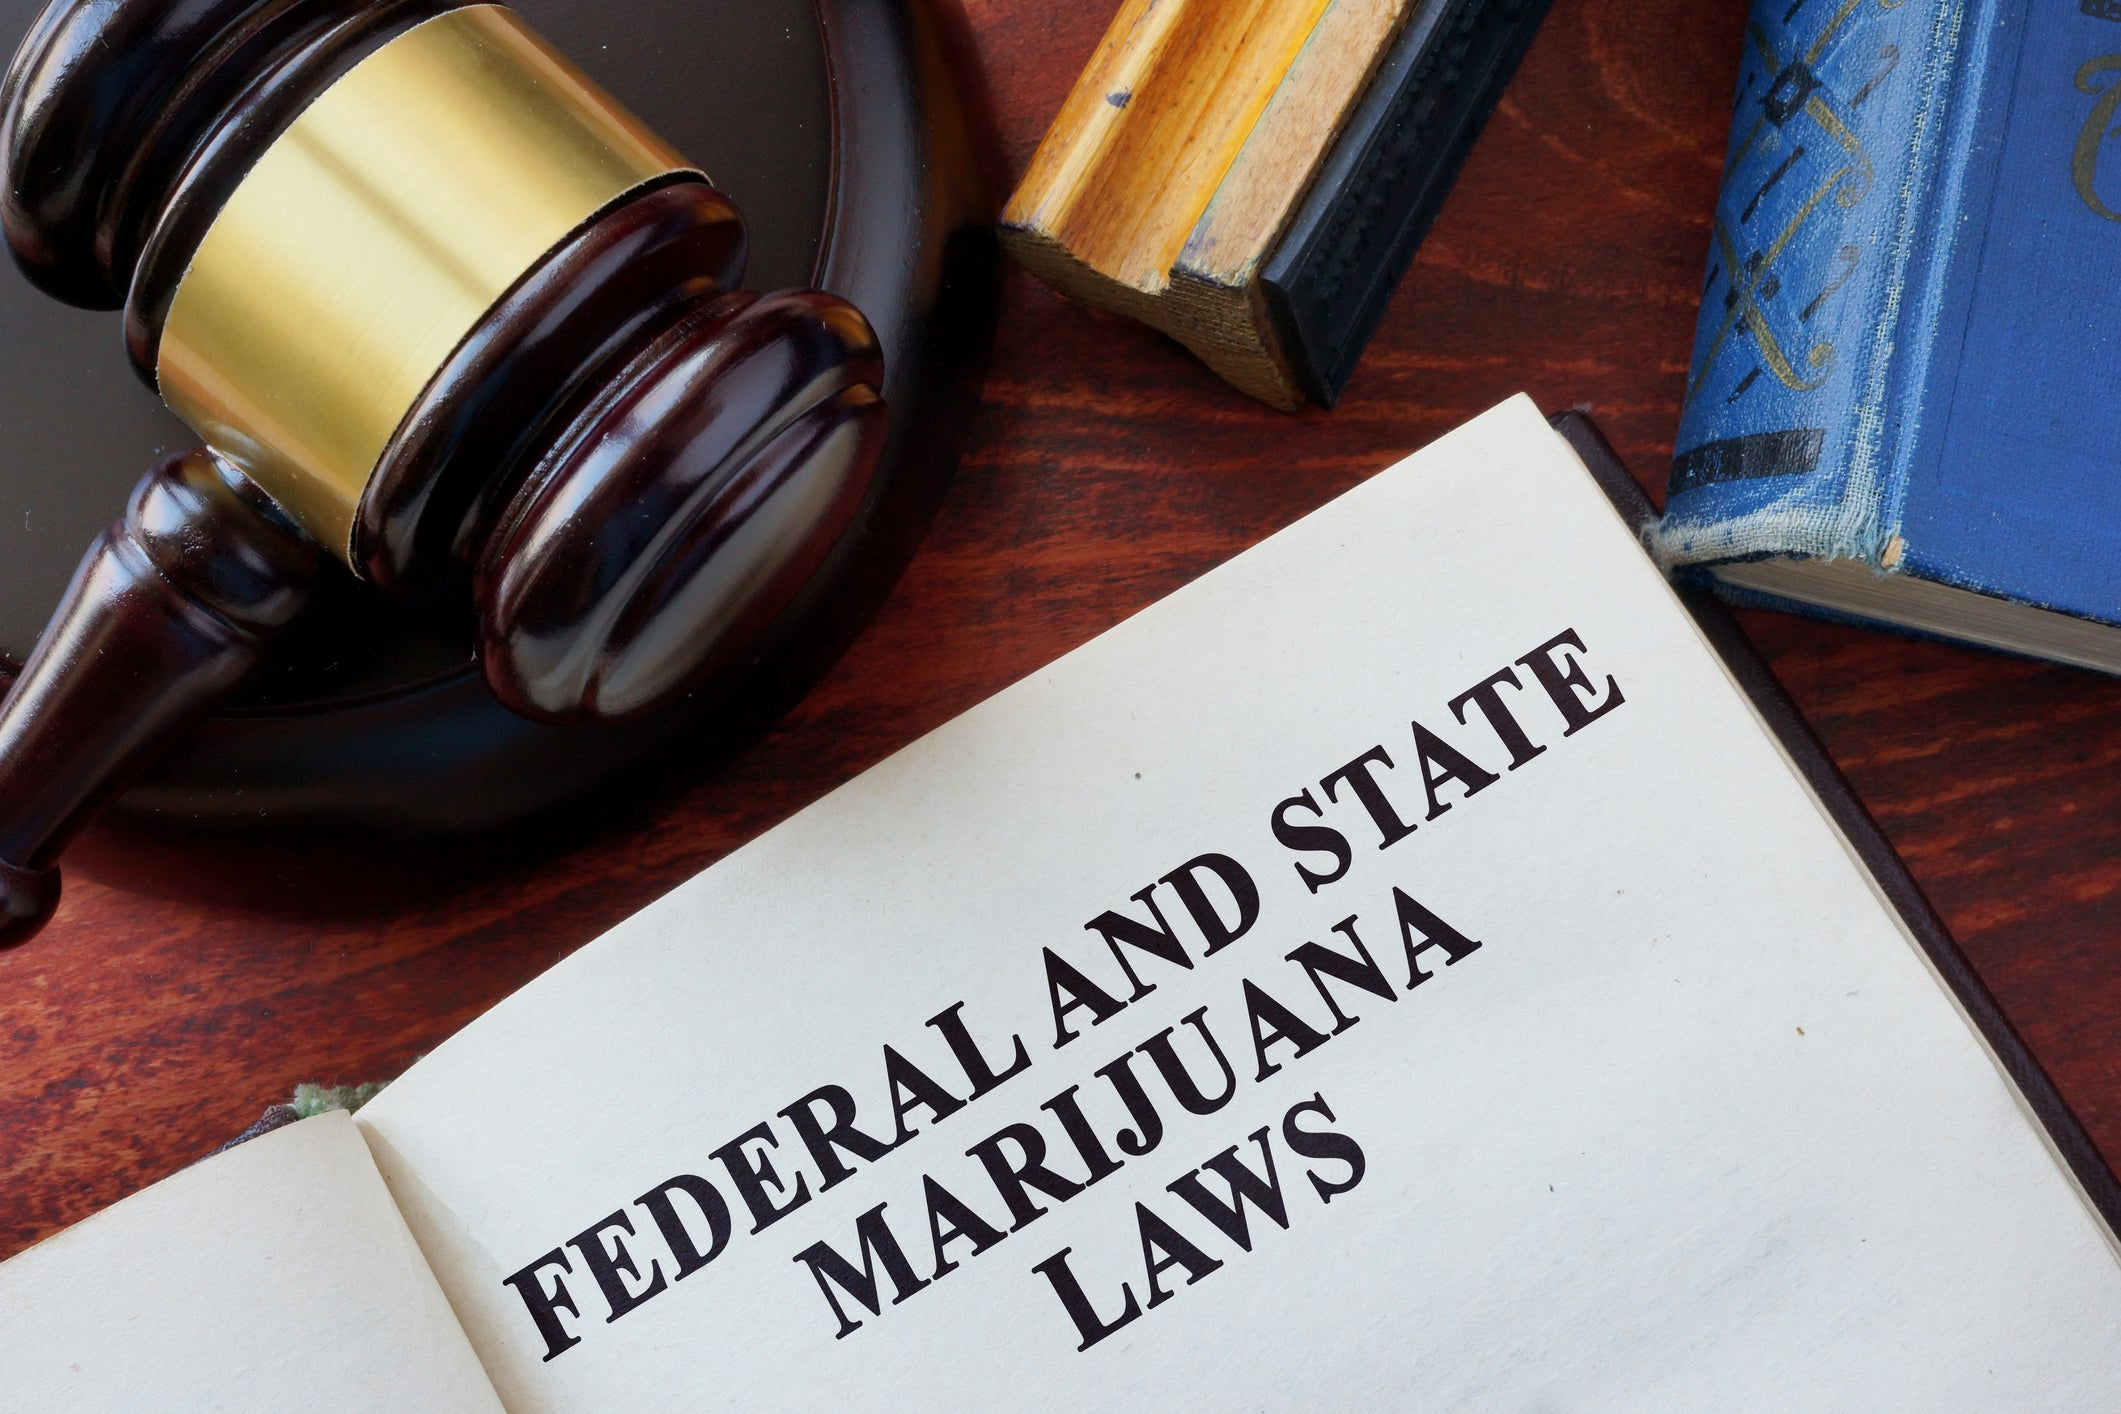 A book on federal and state marijuana laws sitting next to a judge's gavel.